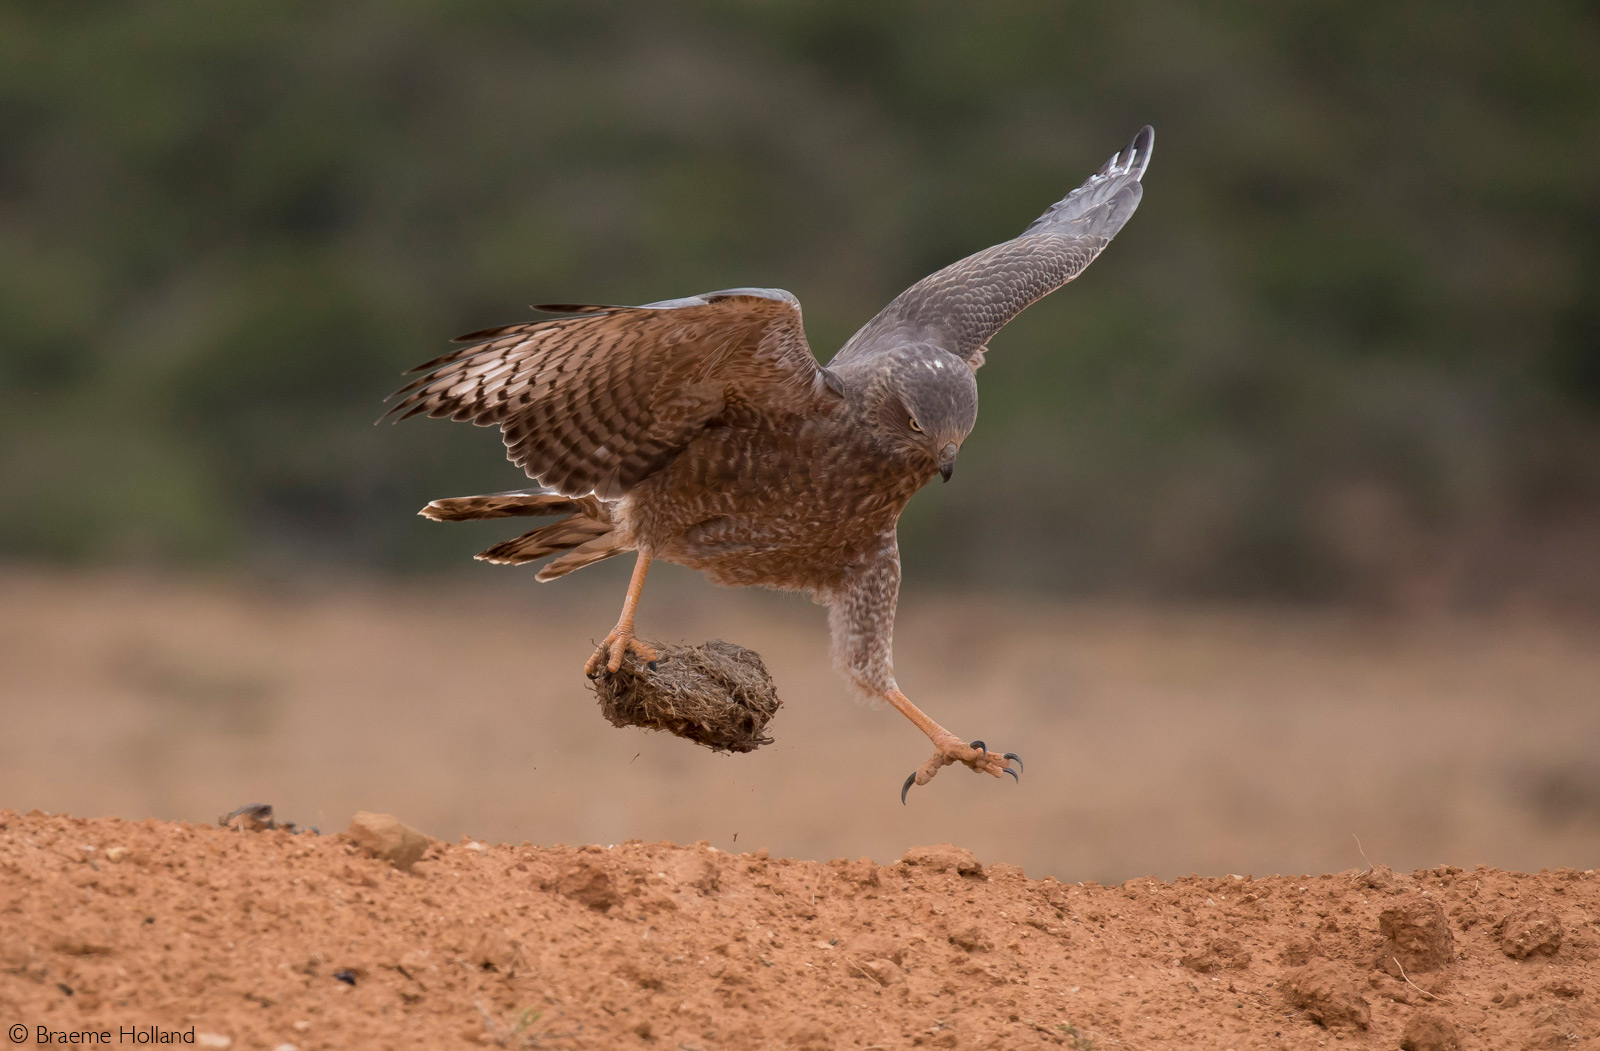 A juvenile pale chanting goshawk takes off with elephant dung, and attempts to extract worms from it. Addo Elephant National Park, South Africa © Braeme Holland